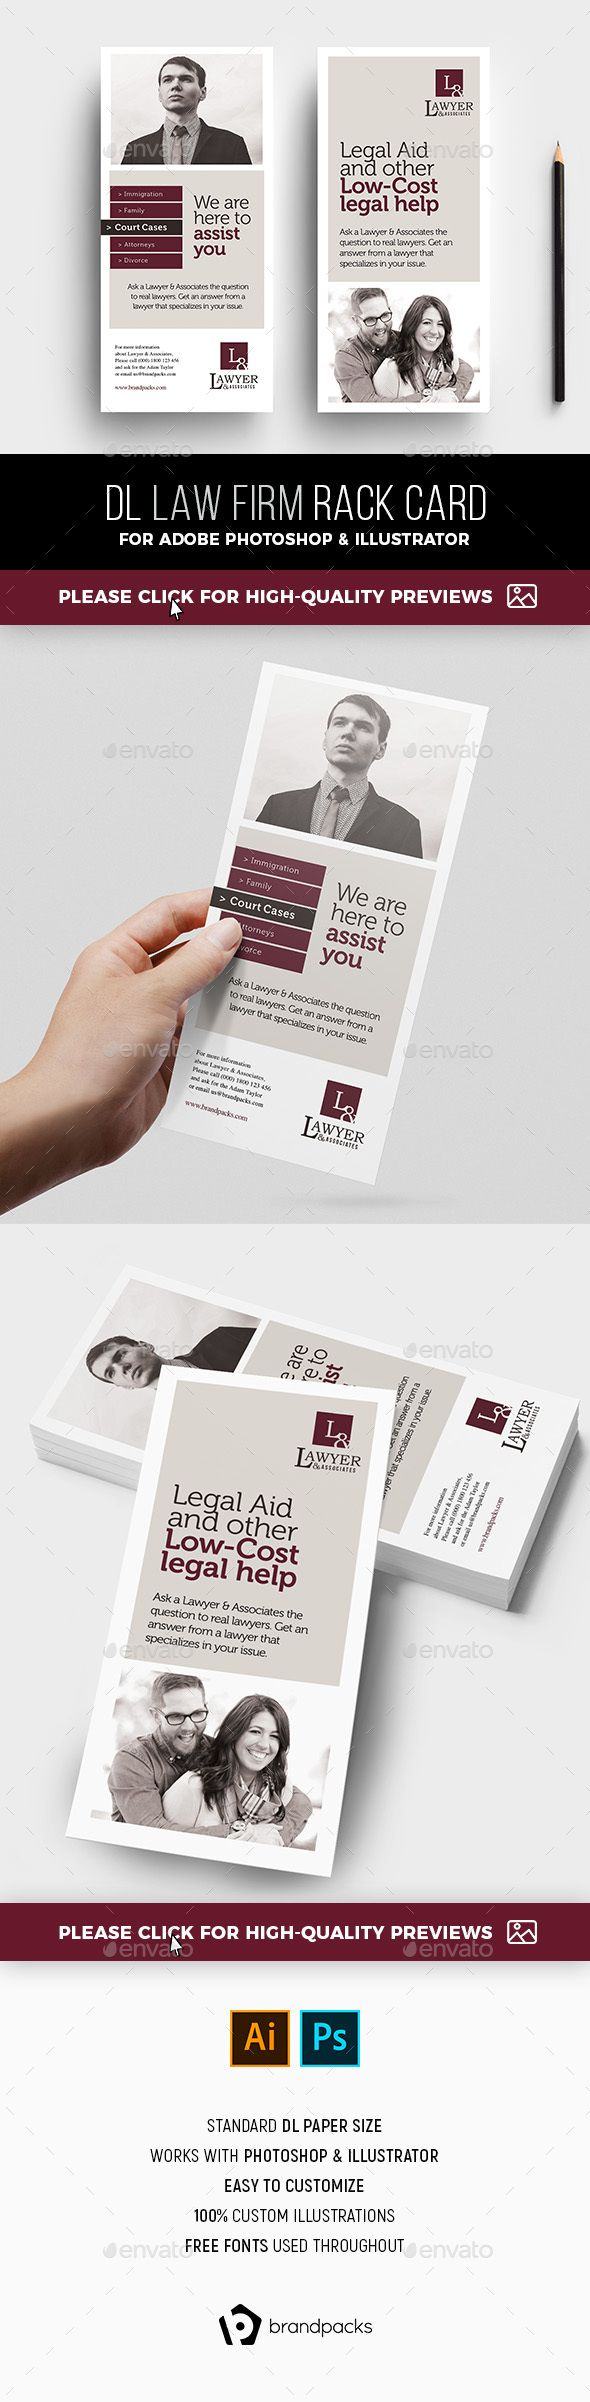 Law Firm Rack Card Template Card Templates Template And Photoshop - Rack card template photoshop